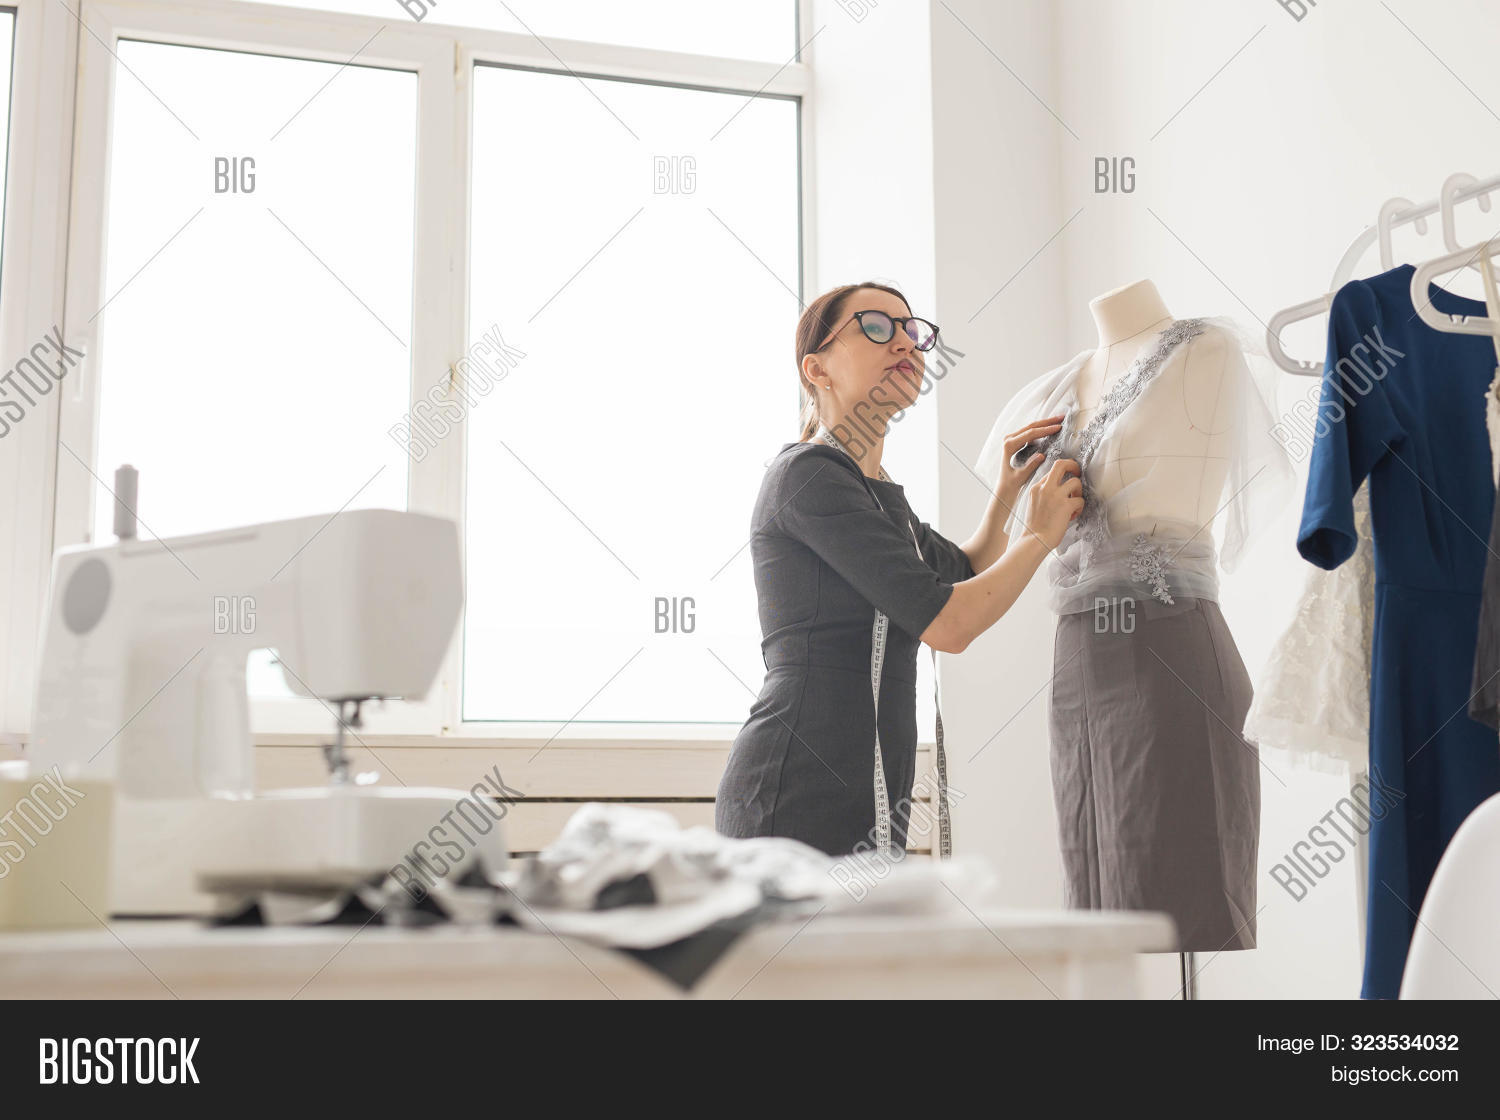 Dressmaker Tailor Image Photo Free Trial Bigstock